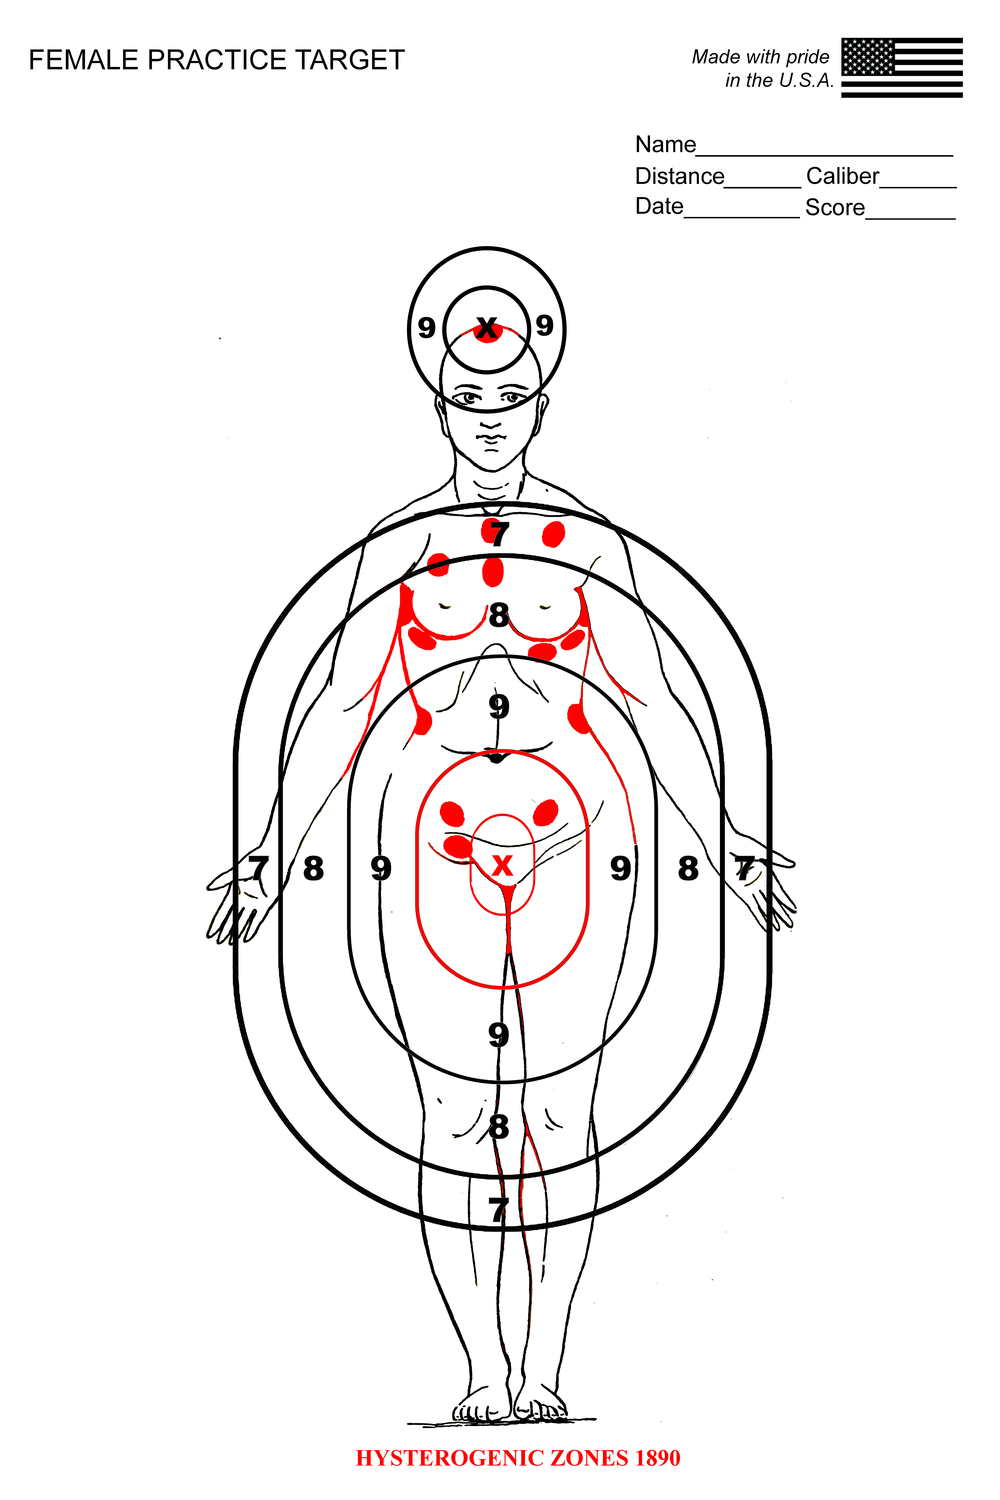 Print combining Hysterogenic Zones chart from 1890 with a contemporary shooting target, 2018